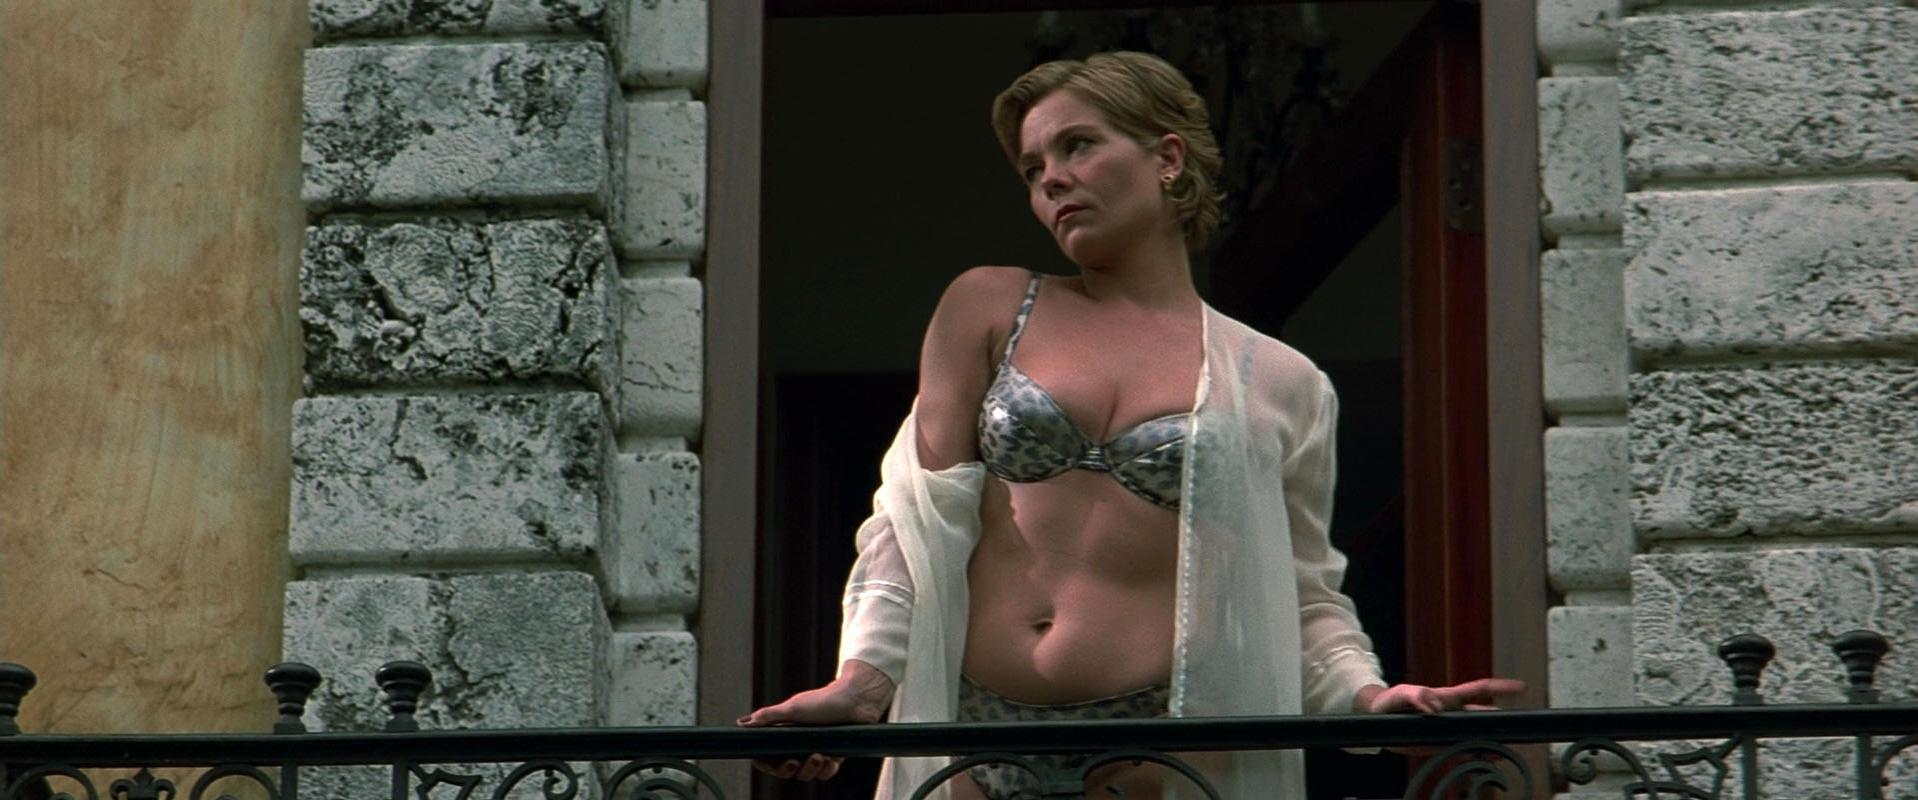 Theresa Russell nude - Wild Things (1998)